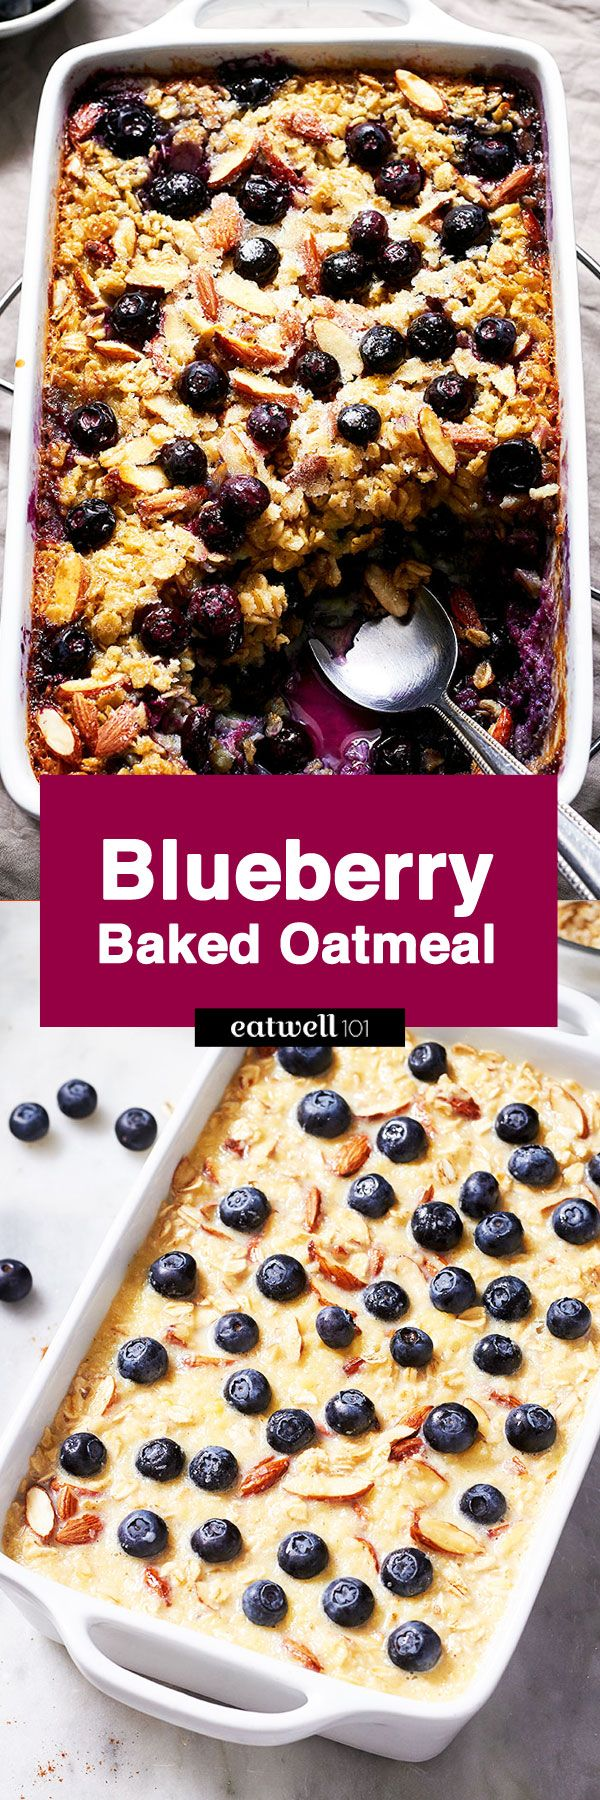 This hearty Blueberry Baked Oatmeal is the perfect satisfying breakfast for a busy morning. Sweet, crunchy and juicy, it comes together quickly and you can easily make a big pan to feed a crowd or …